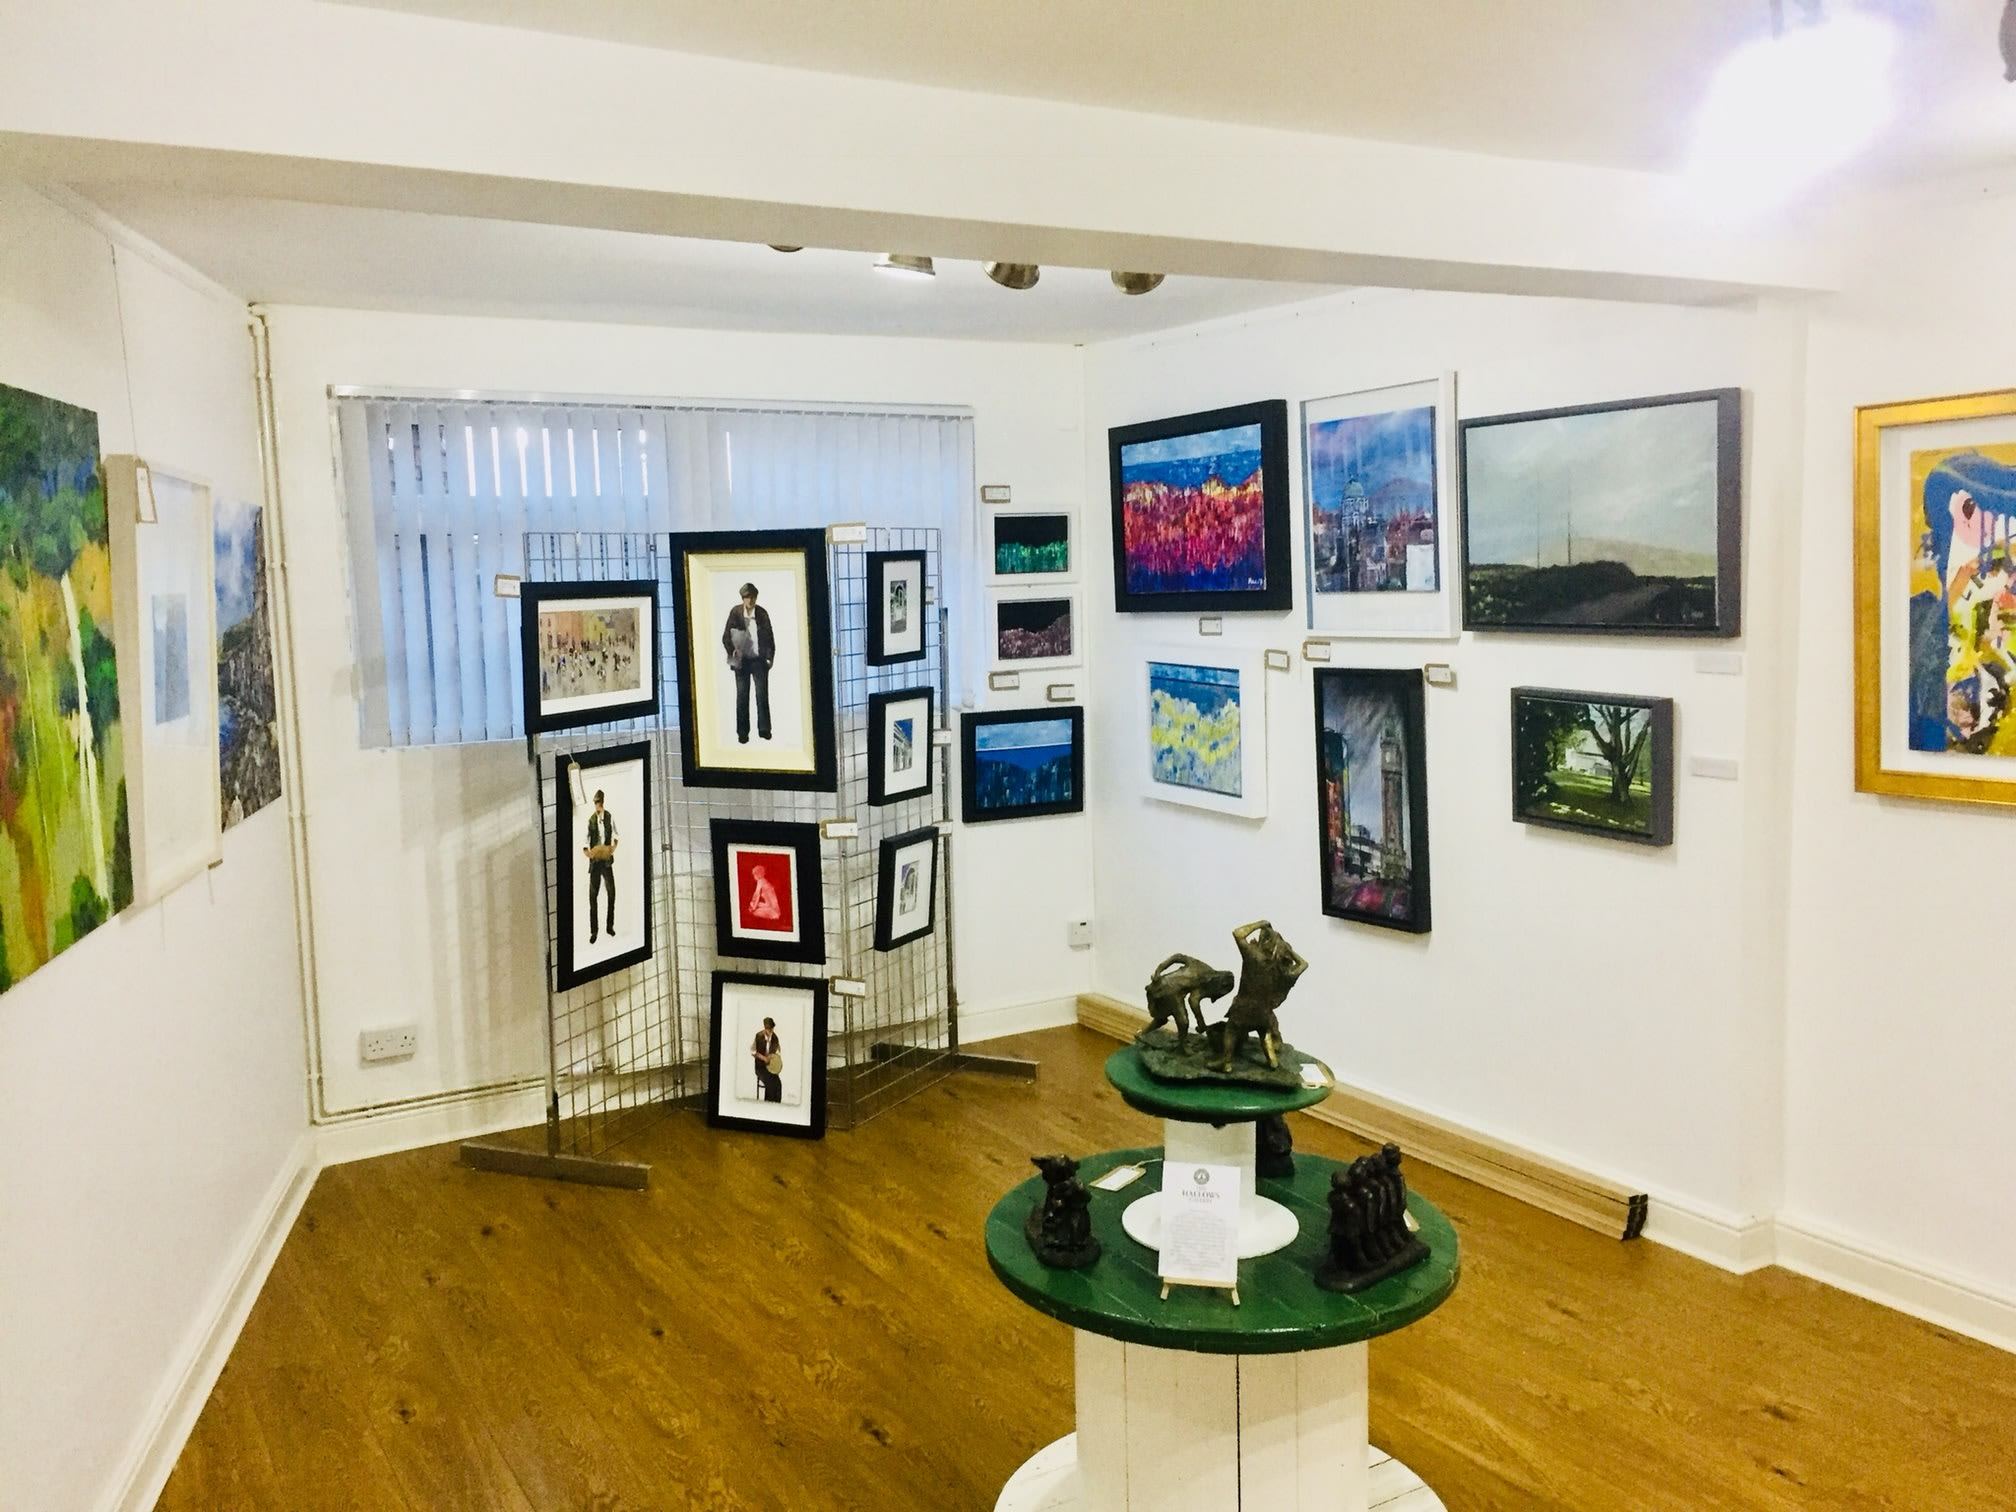 The Hallows Gallery & Framing